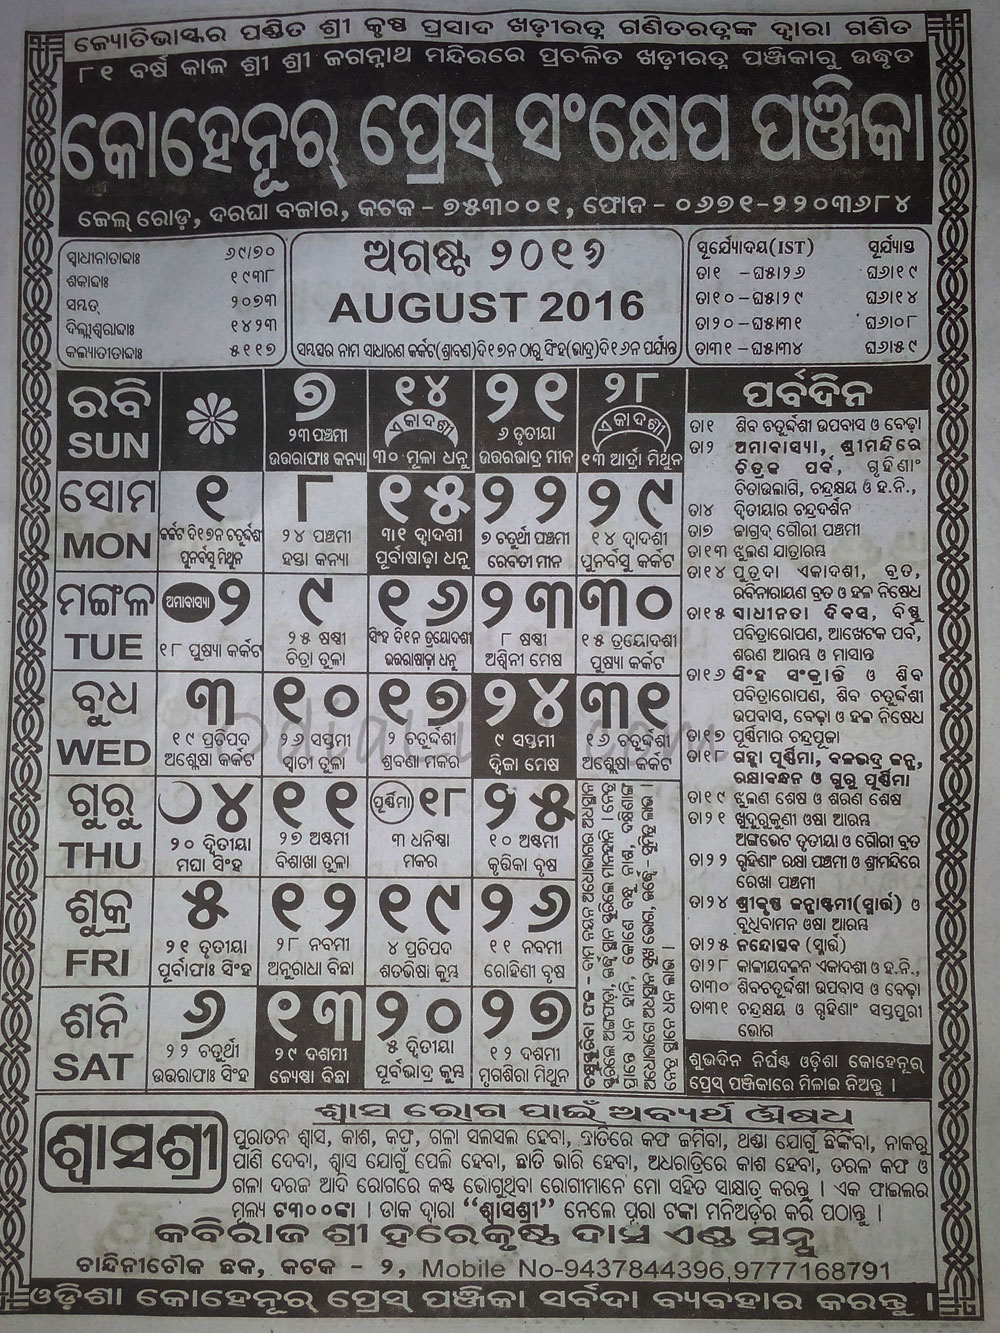 odia-calender-2016---august